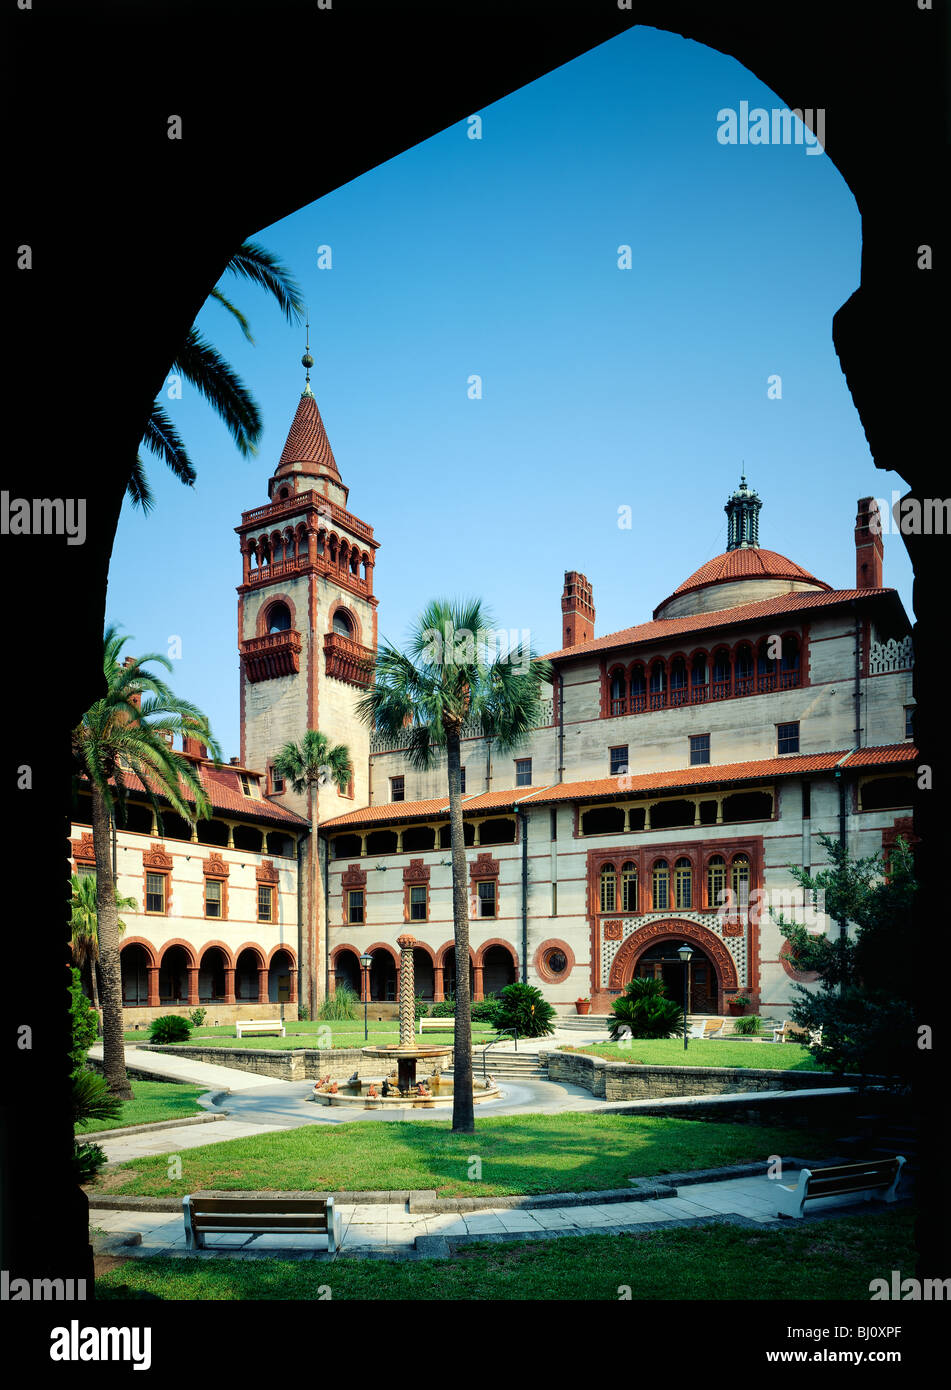 Delicieux Building At Flagler College, 1888 Spanish Renaissance Style Architecture,  Originally Built As A Hotel, St. Augustine, Florida